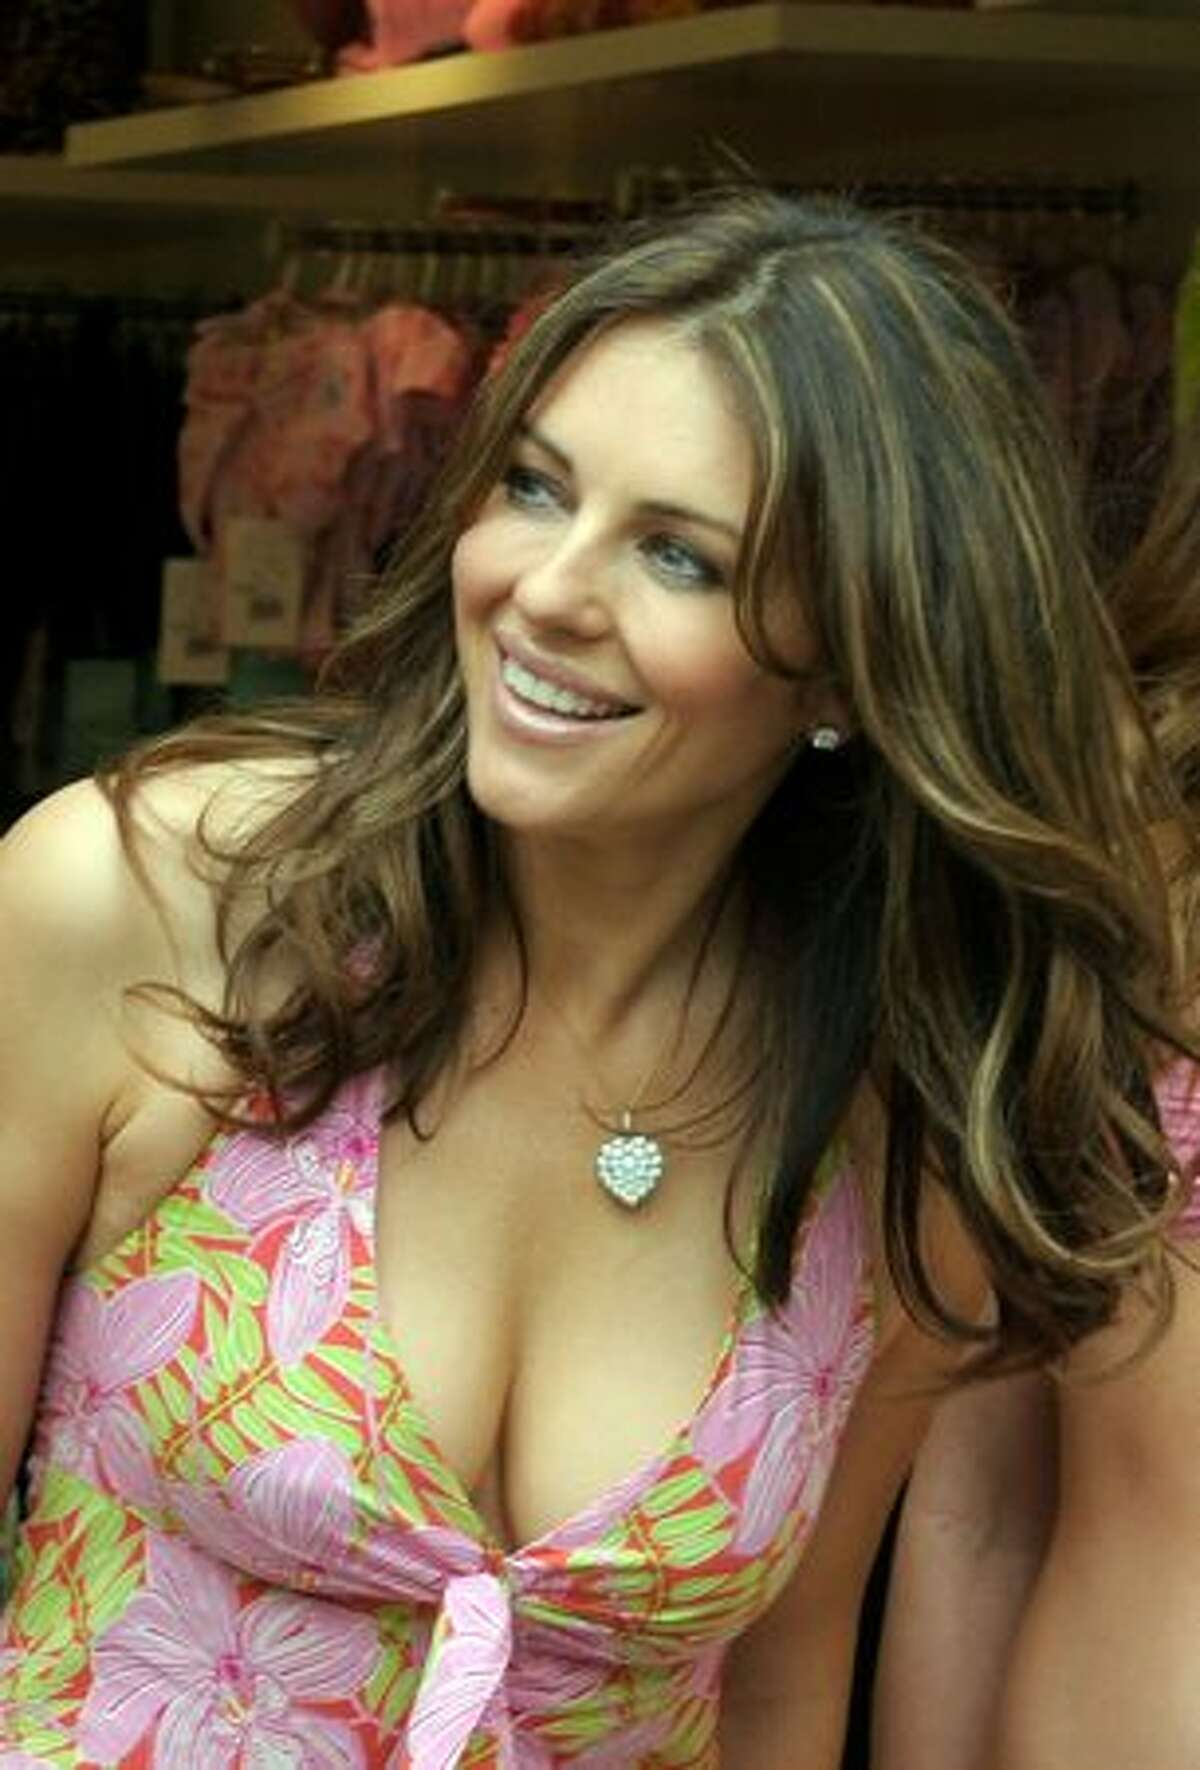 Actress Elizabeth Hurley attends the opening of her first store in Spain, 'Elizabeth Hurley Beach', at La Rocca Village Outlet on Tuesday in Barcelona, Spain.